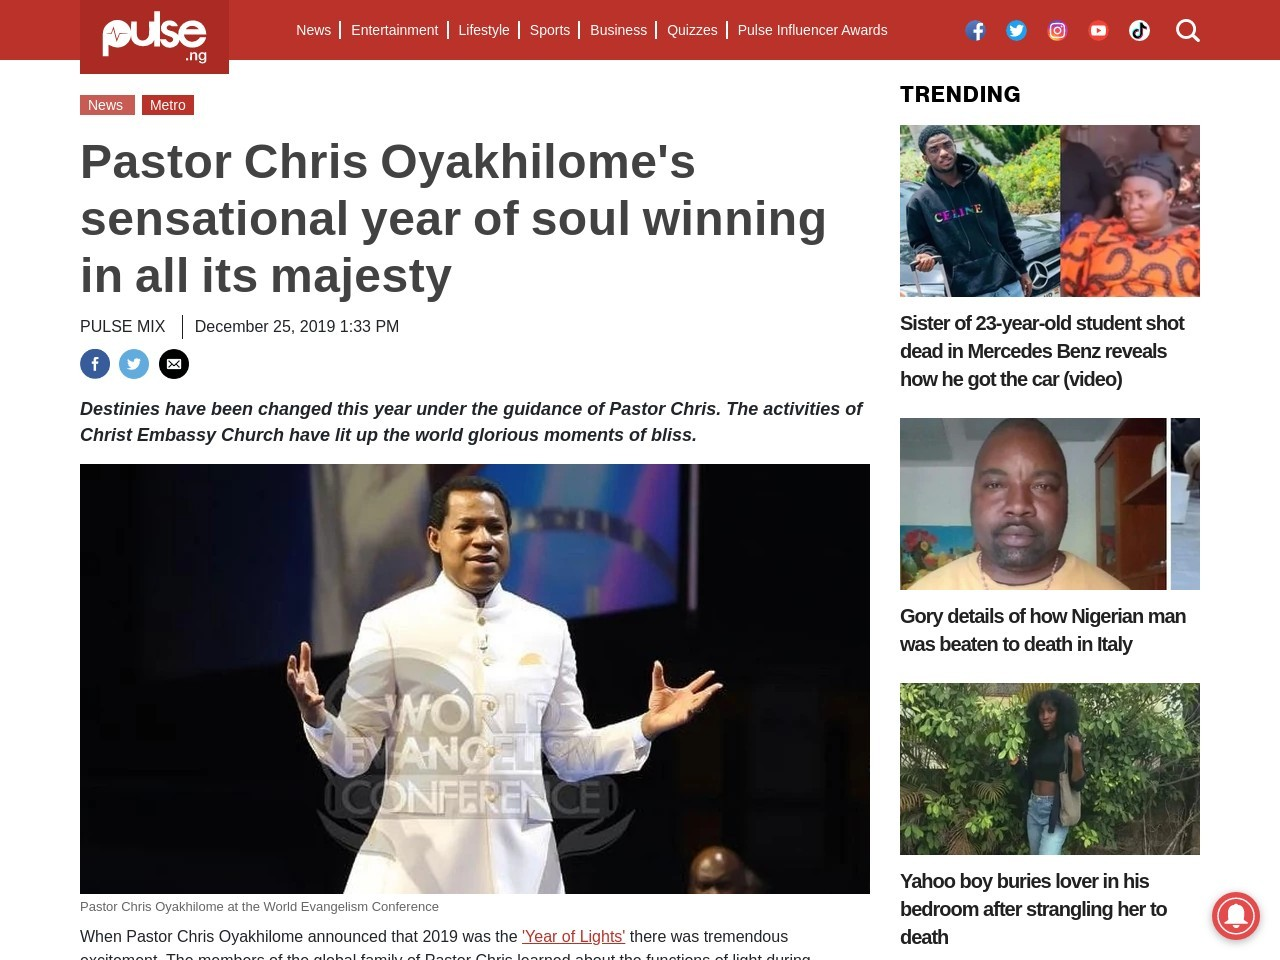 Pastor Chris Oyakhilome's sensational year of soul winning in all its majesty